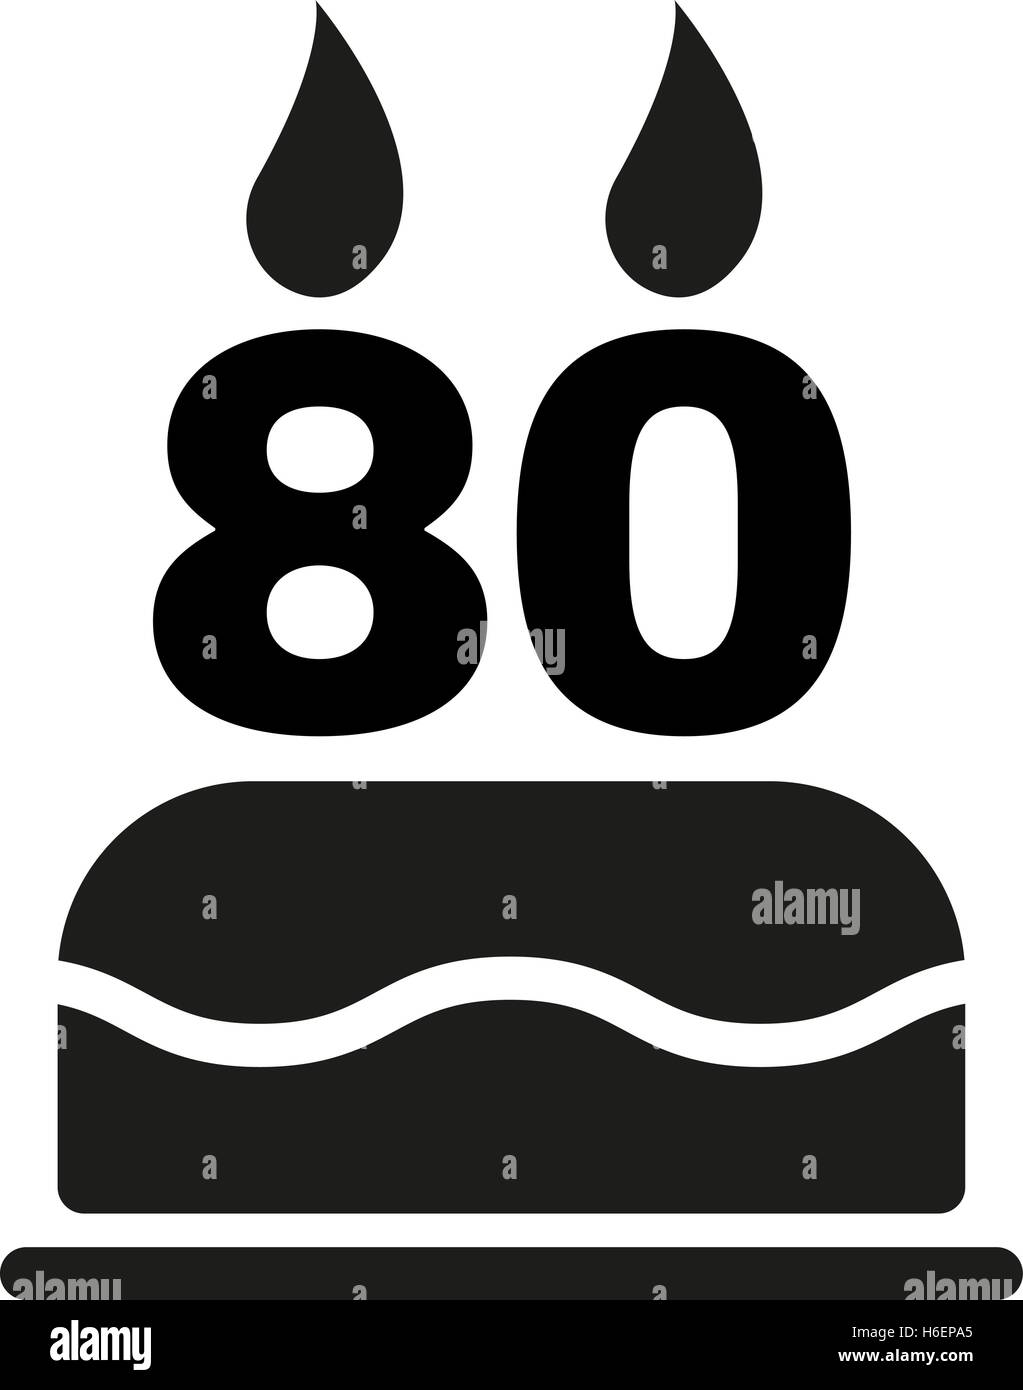 The birthday cake with candles in the form of number 80 icon stock the birthday cake with candles in the form of number 80 icon birthday symbol flat vector illustration biocorpaavc